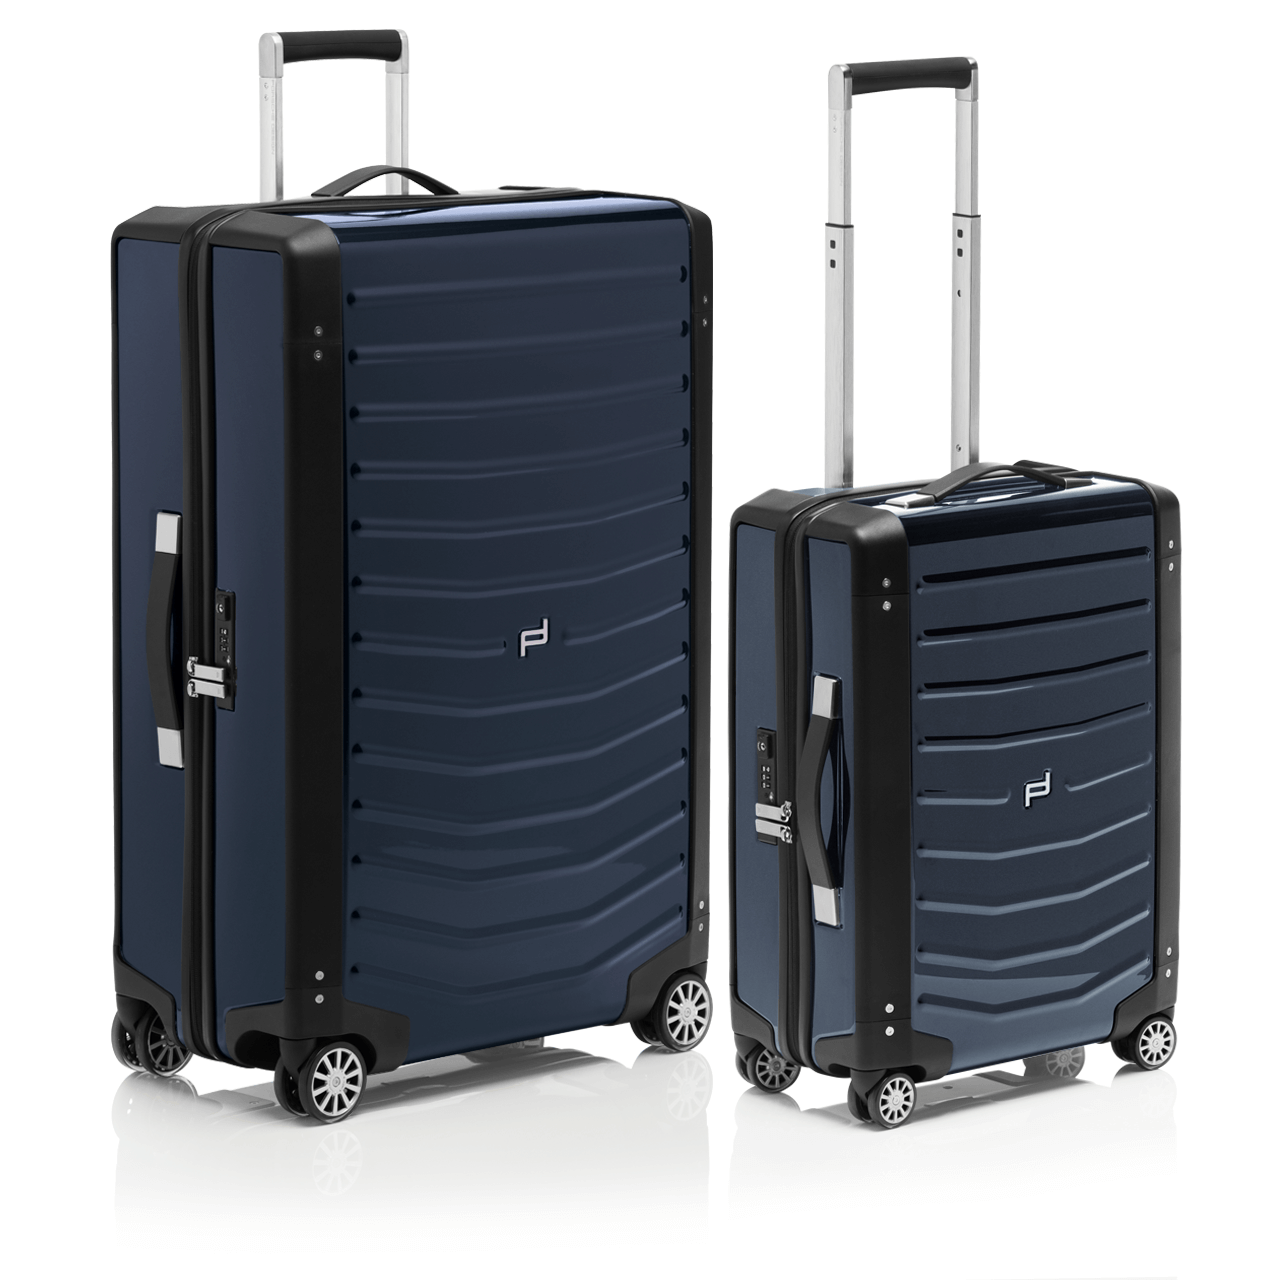 ROADSTER HARDCASE SERIES SET S/L - фото 1